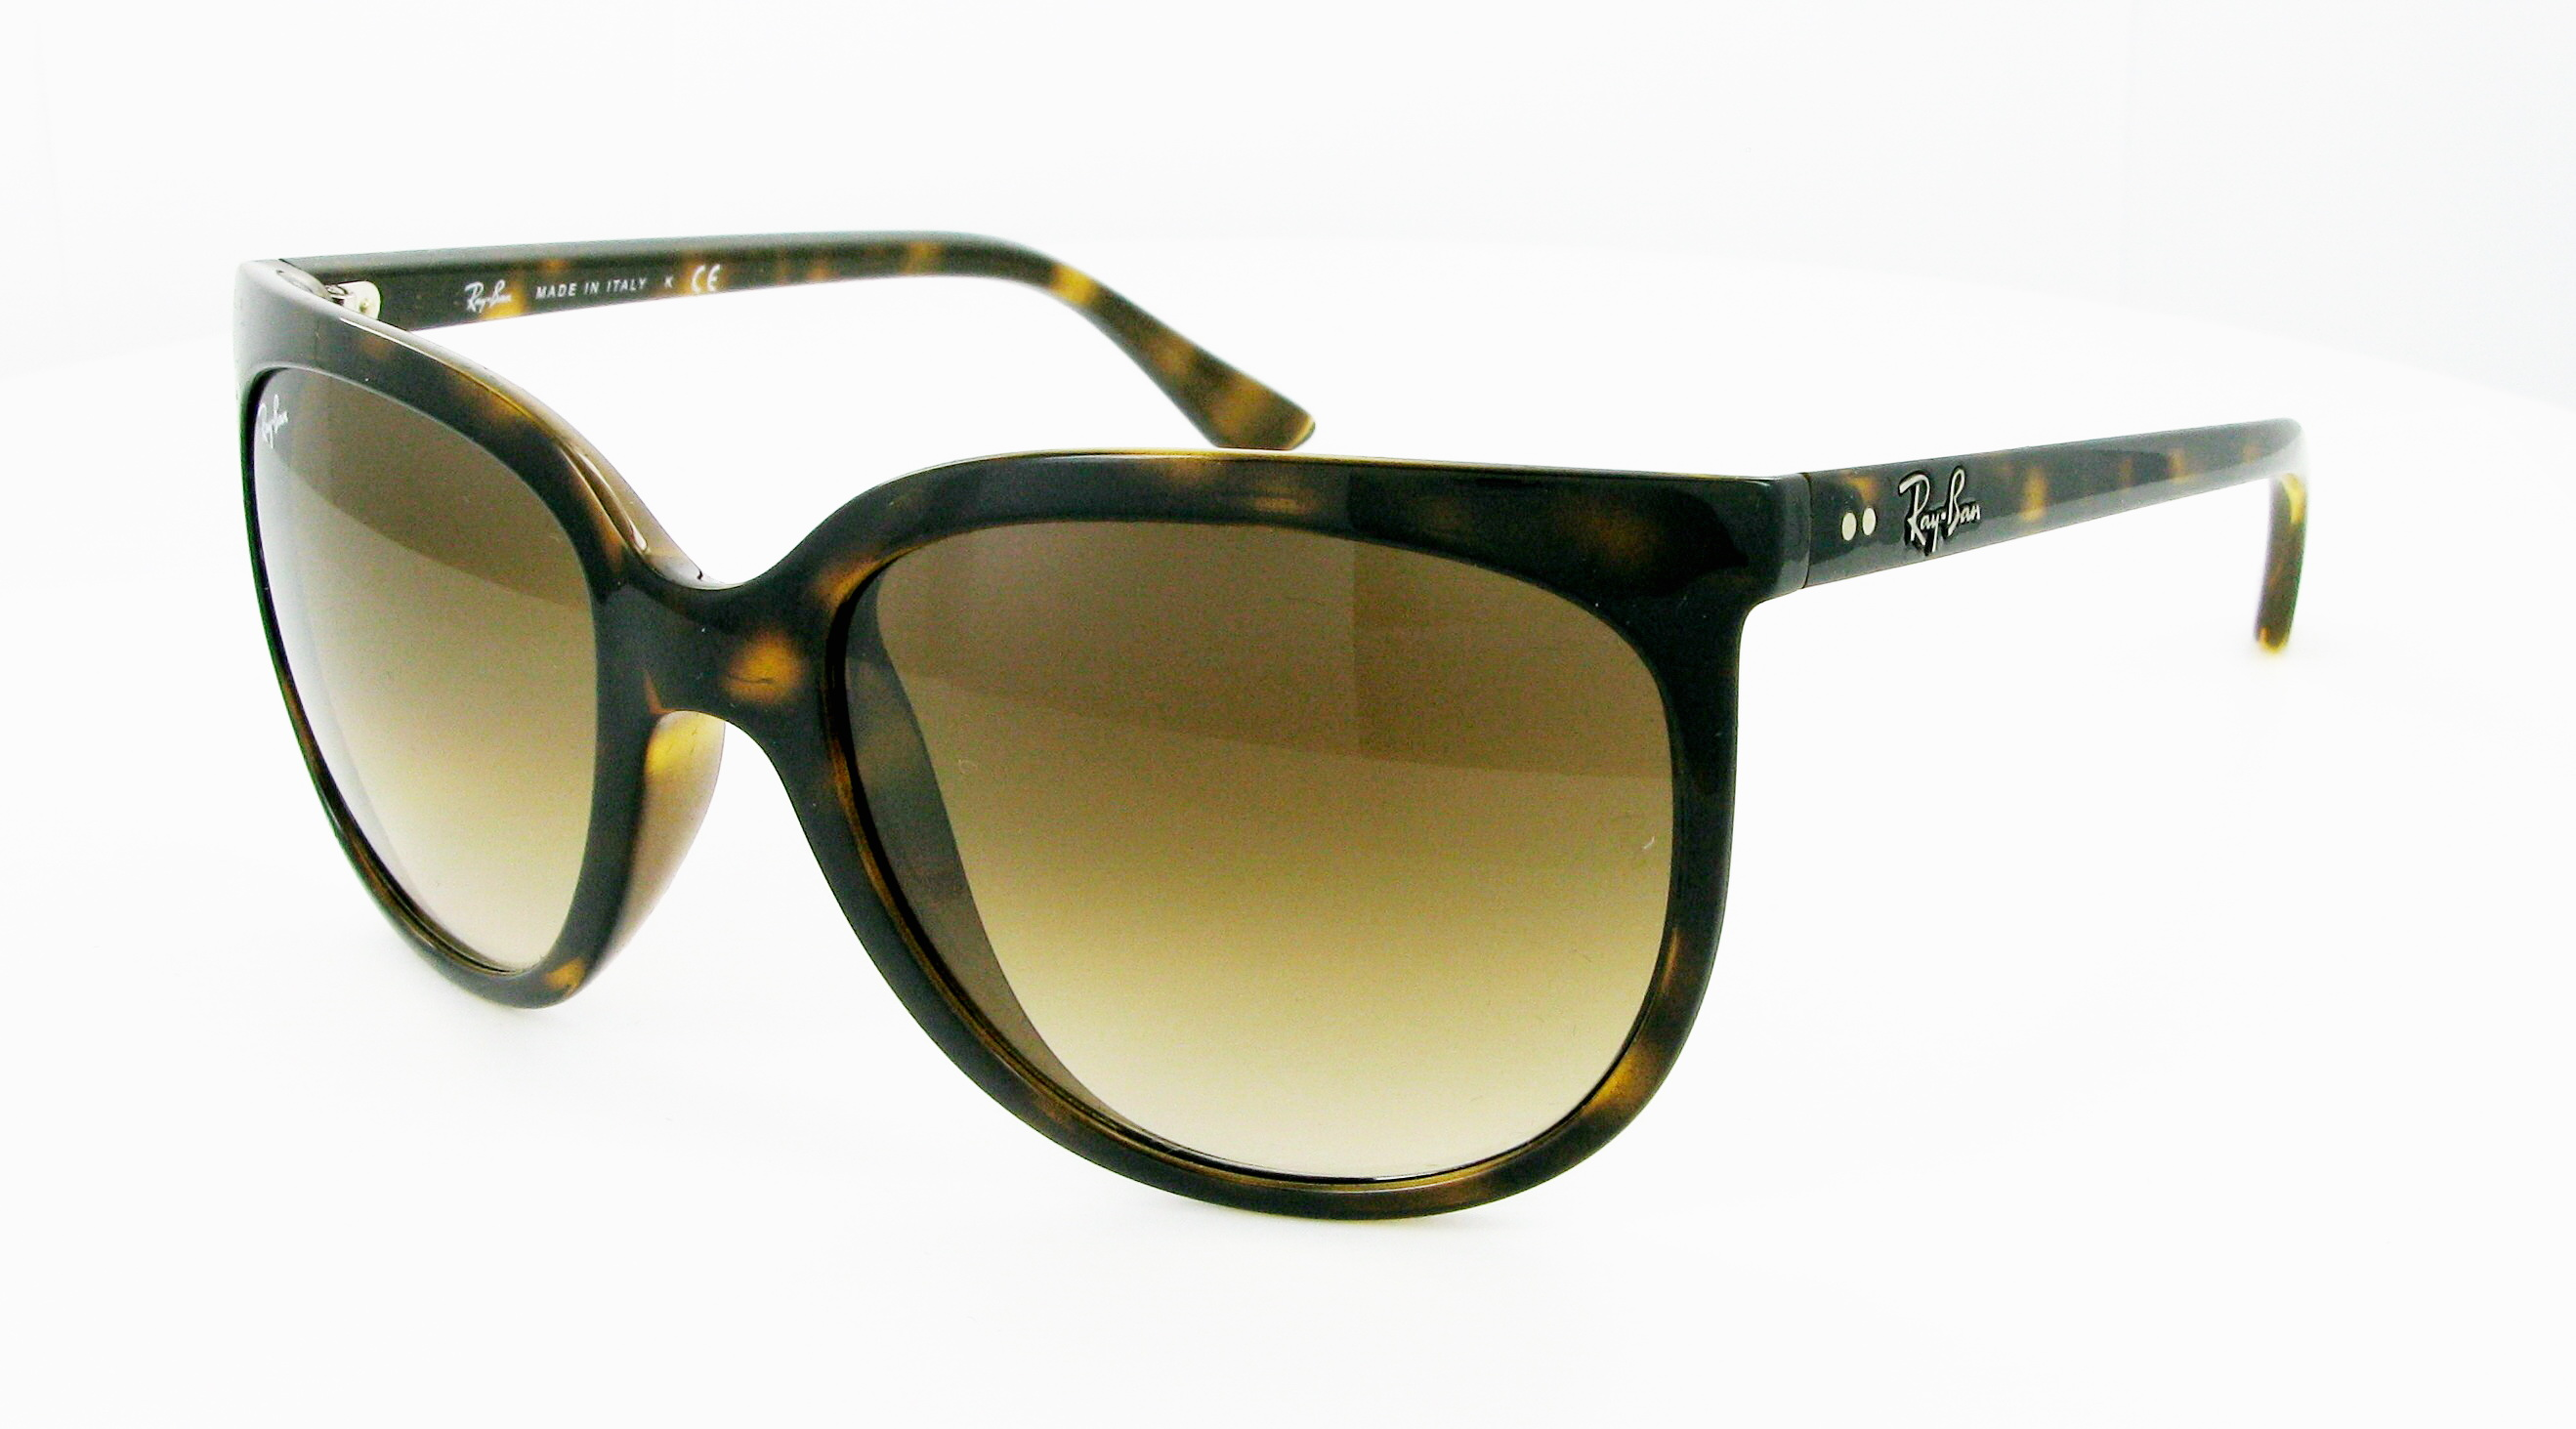 Lunette De Vue Ray Ban Femme Optical Center   Programa Cidades ... bd123deb94c3